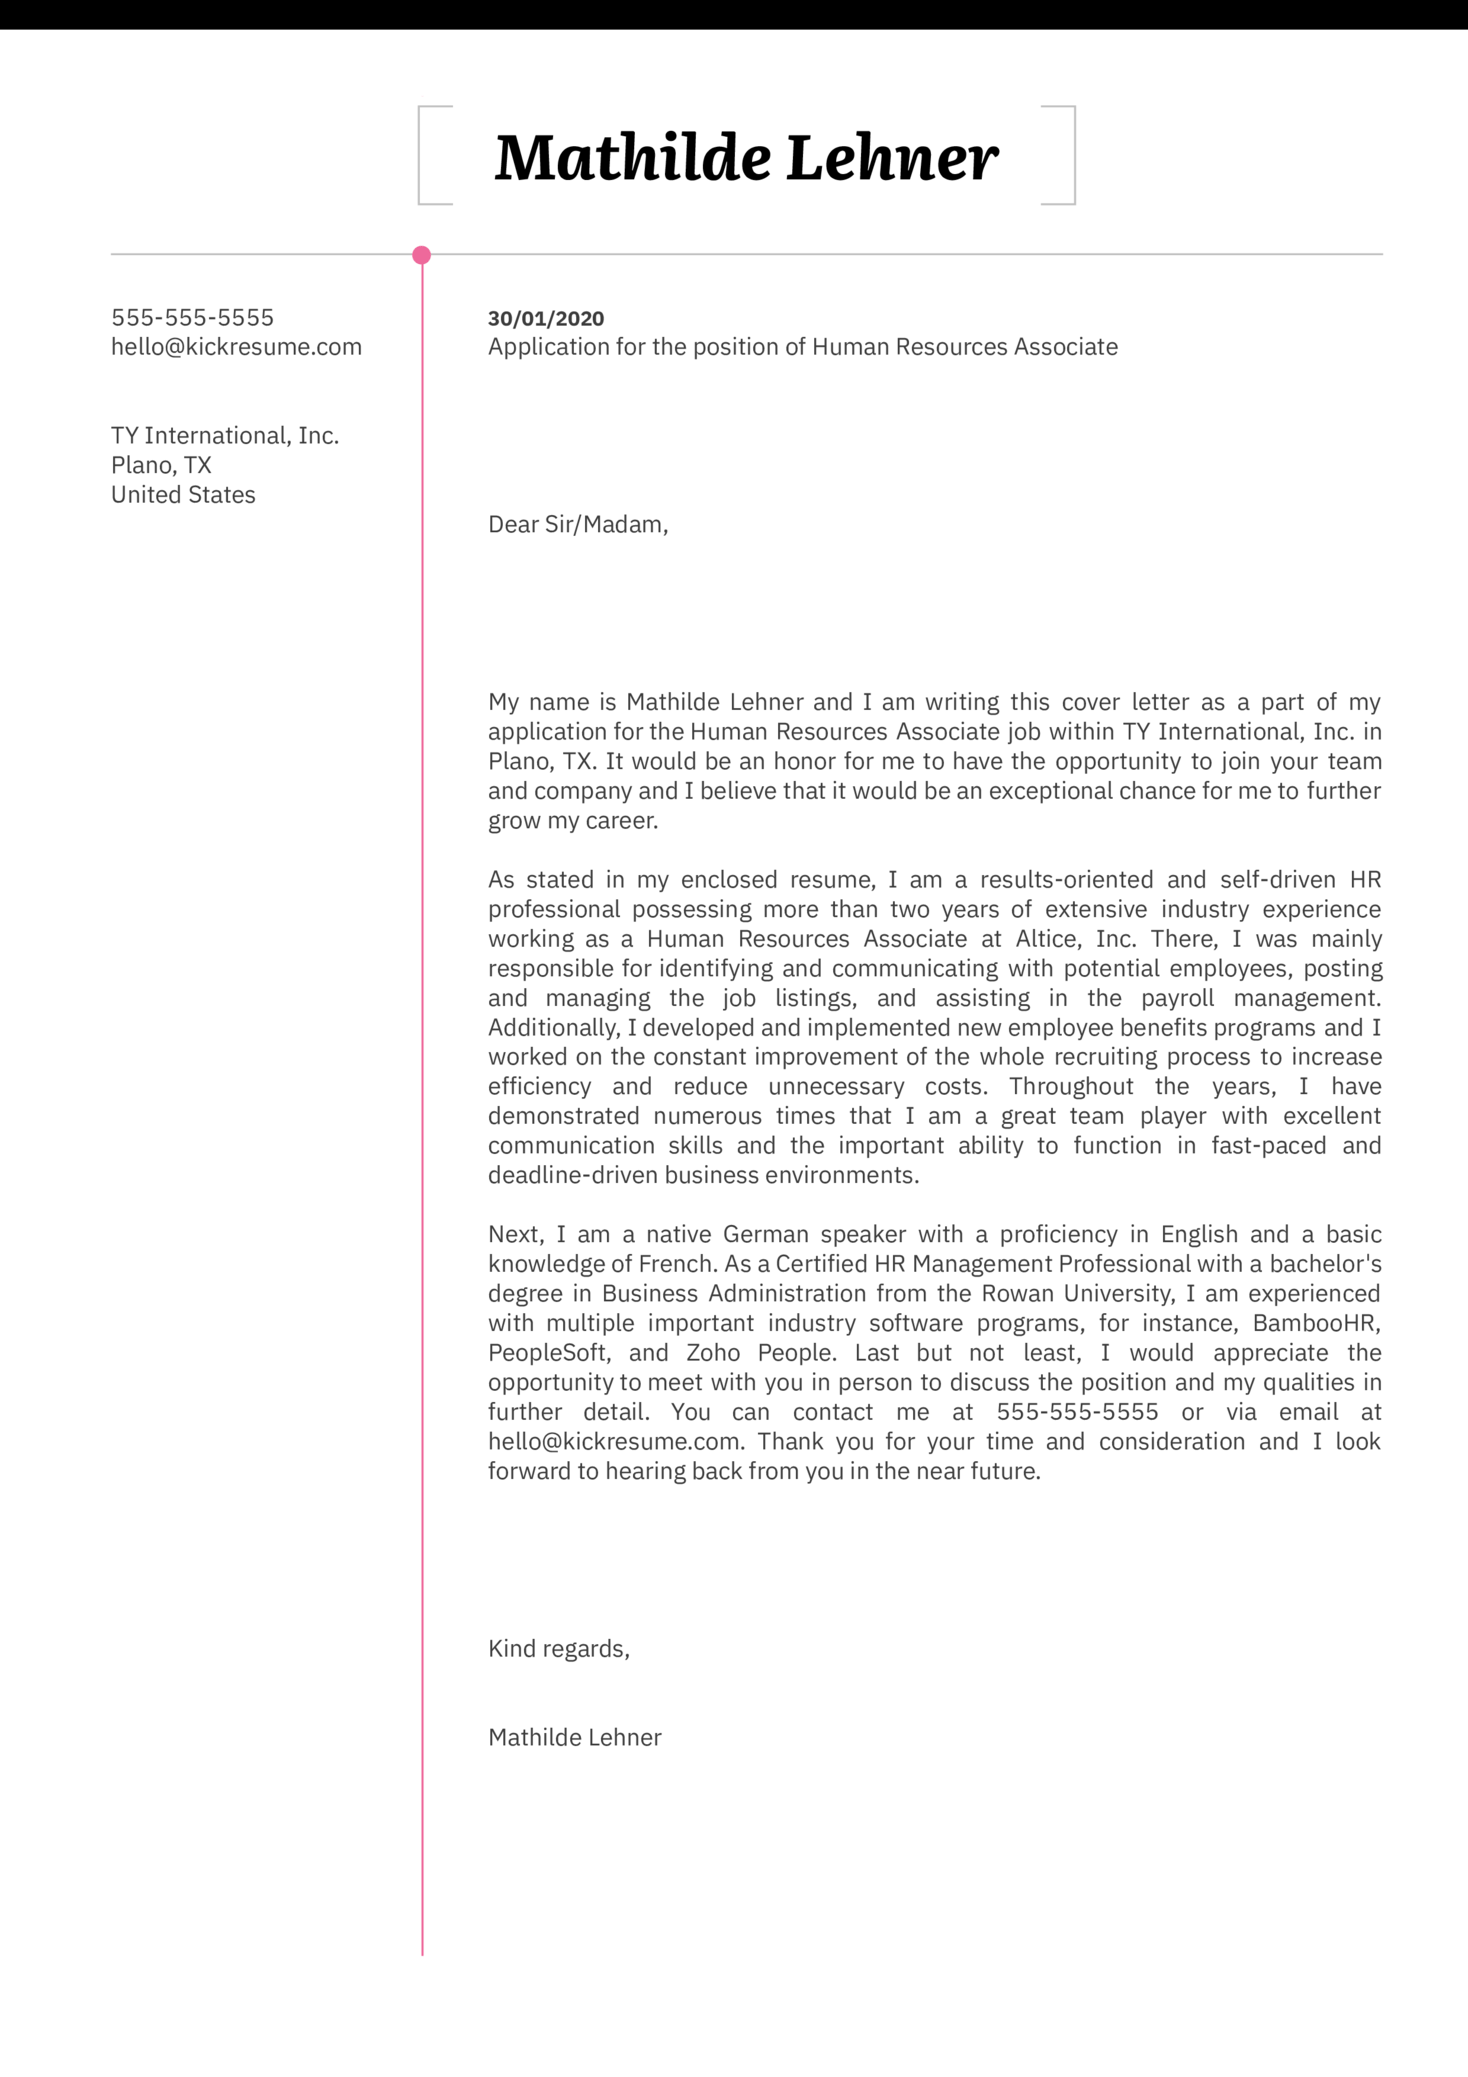 Human Resources Associate Cover Letter Sample